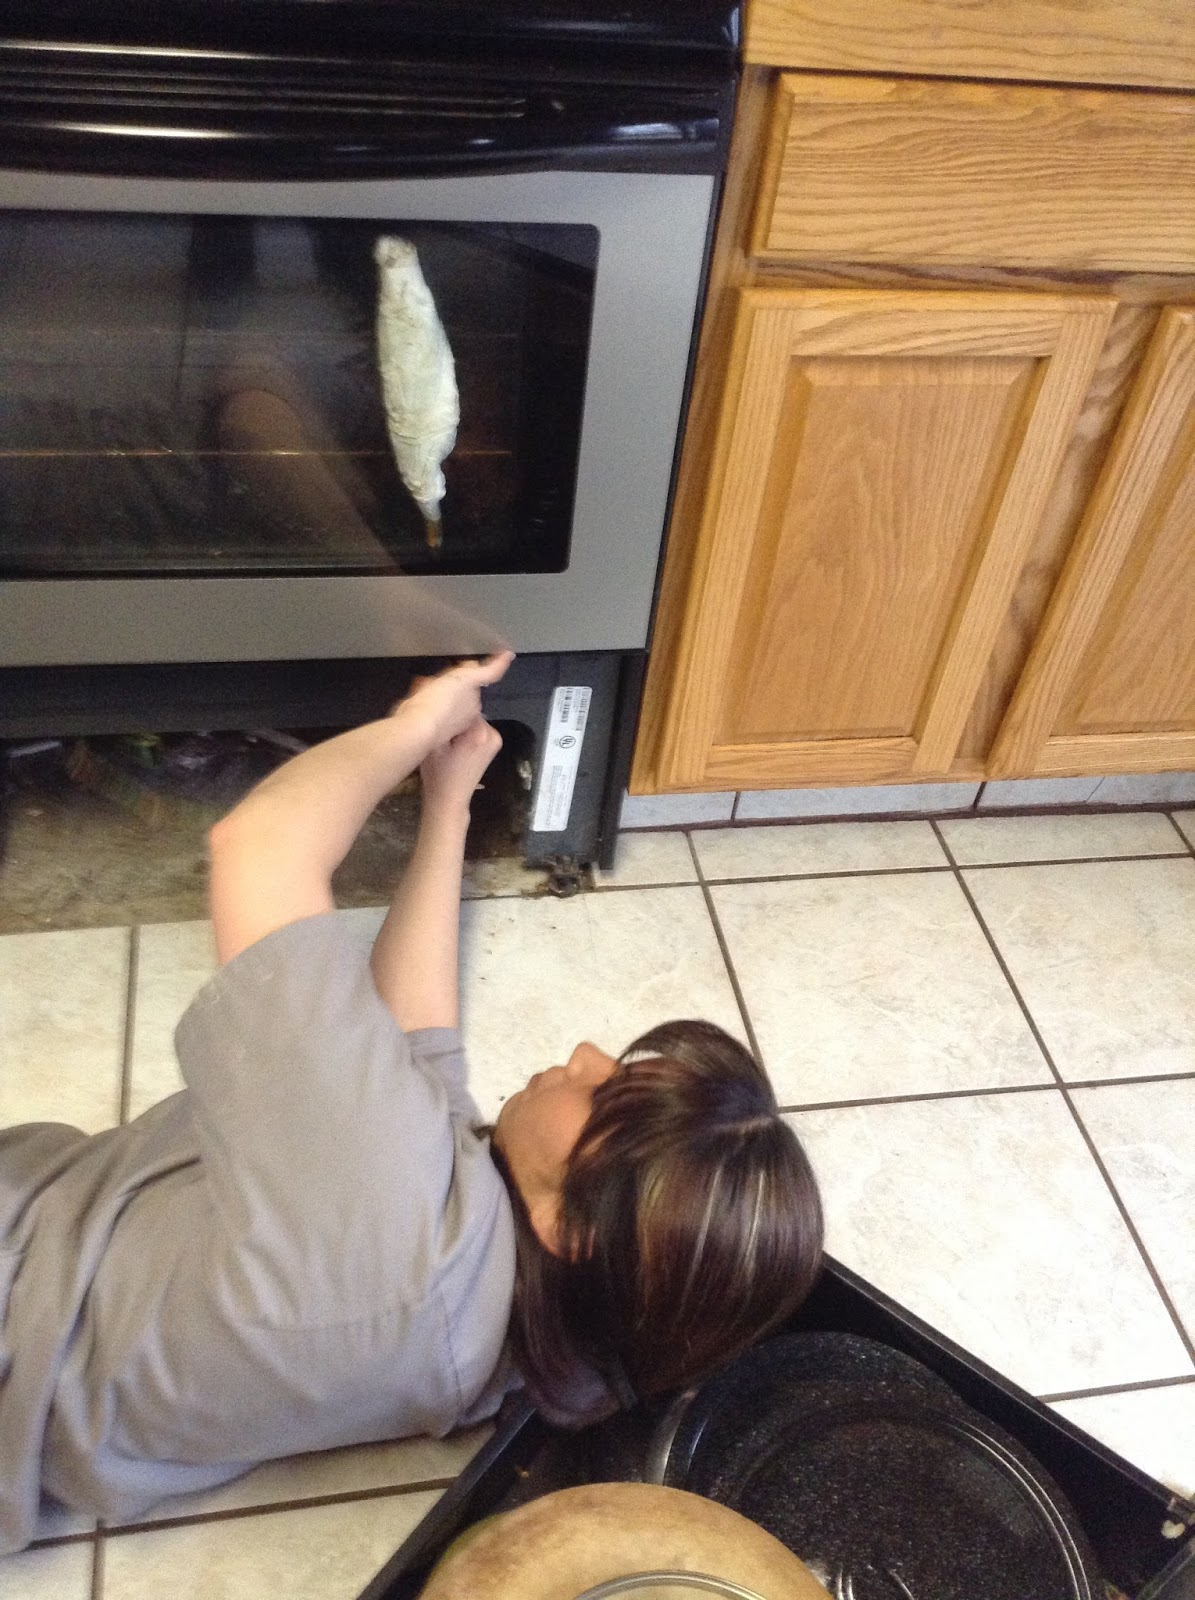 how to clean oven window inside